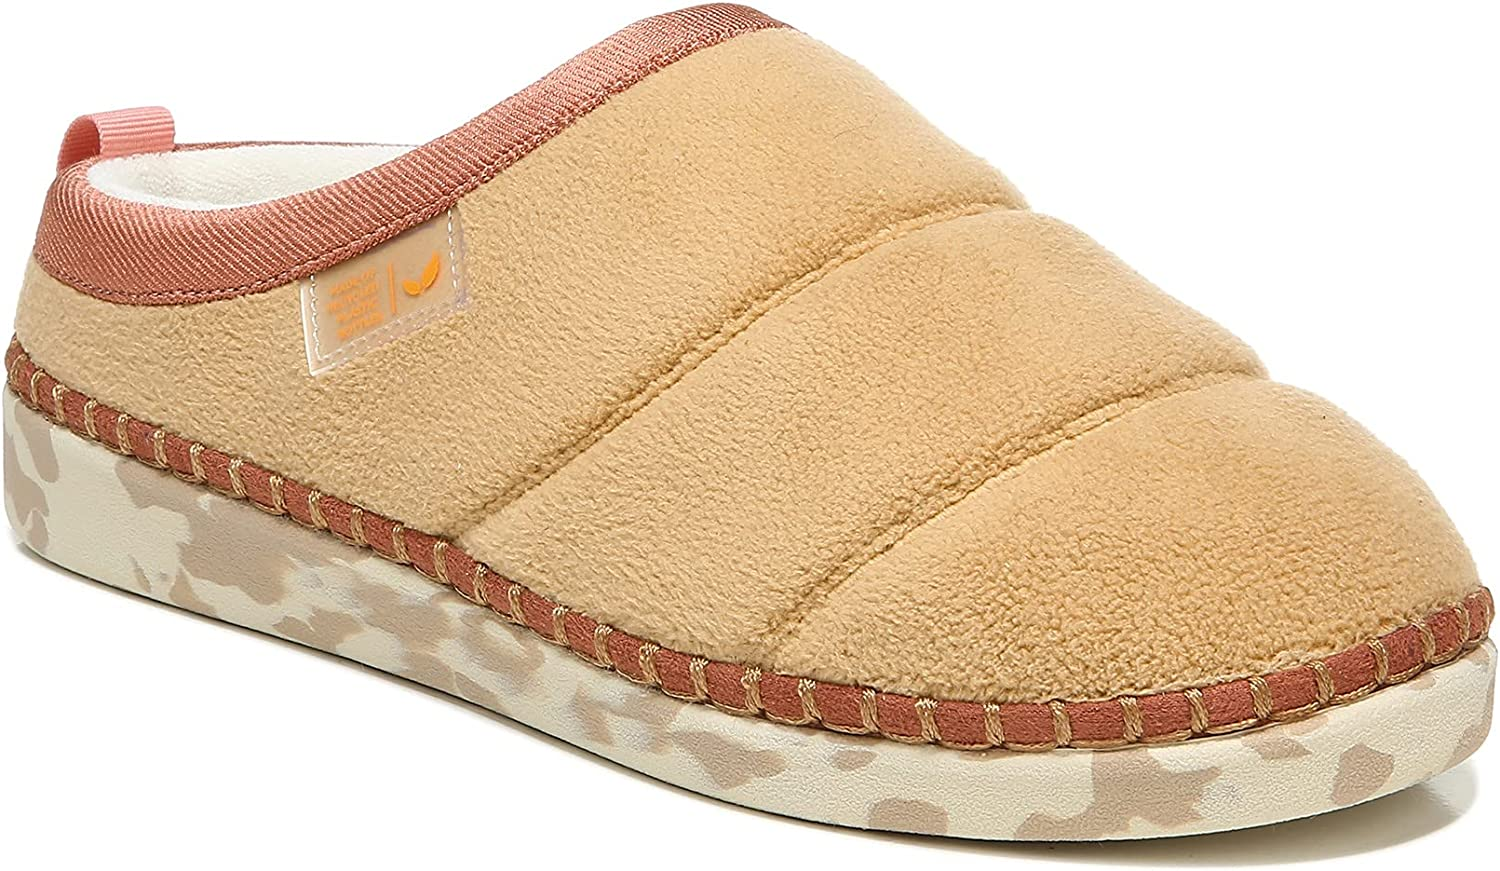 Dr. Scholl's Shoes Max 87% OFF Women's Phoenix Mall Slipper Cozy Vibes